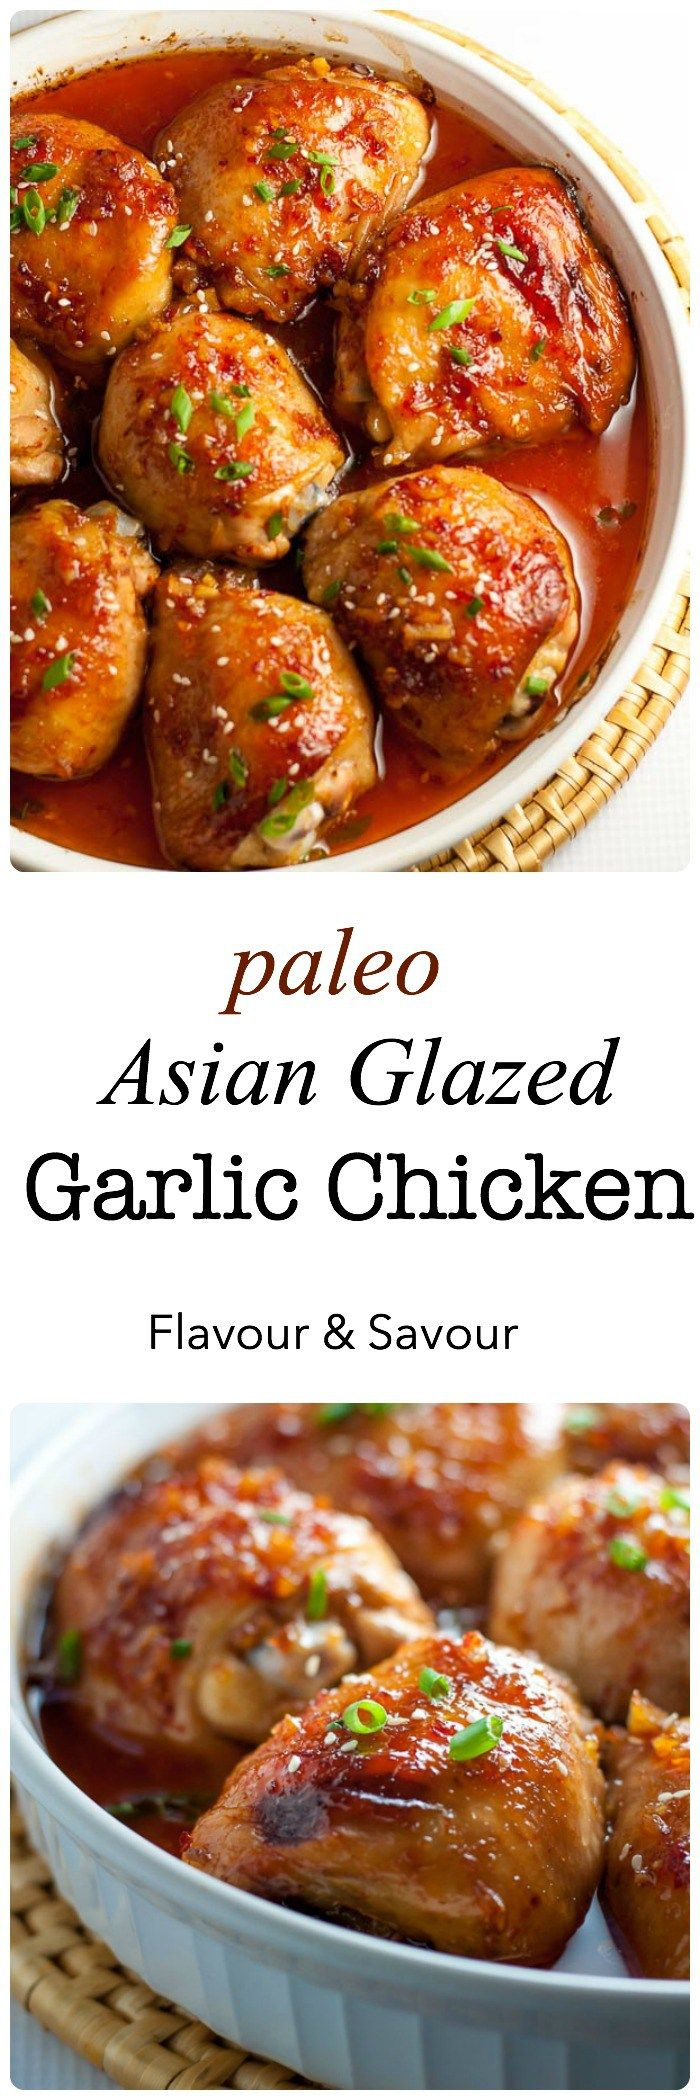 This Paleo Asian Glazed Garlic Chicken is so easy! Tender, juicy chicken thighs glazed with an Asian-inspired sauce with a little heat and hints of garlic, sesame and ginger. |www.flavourandsavour.com